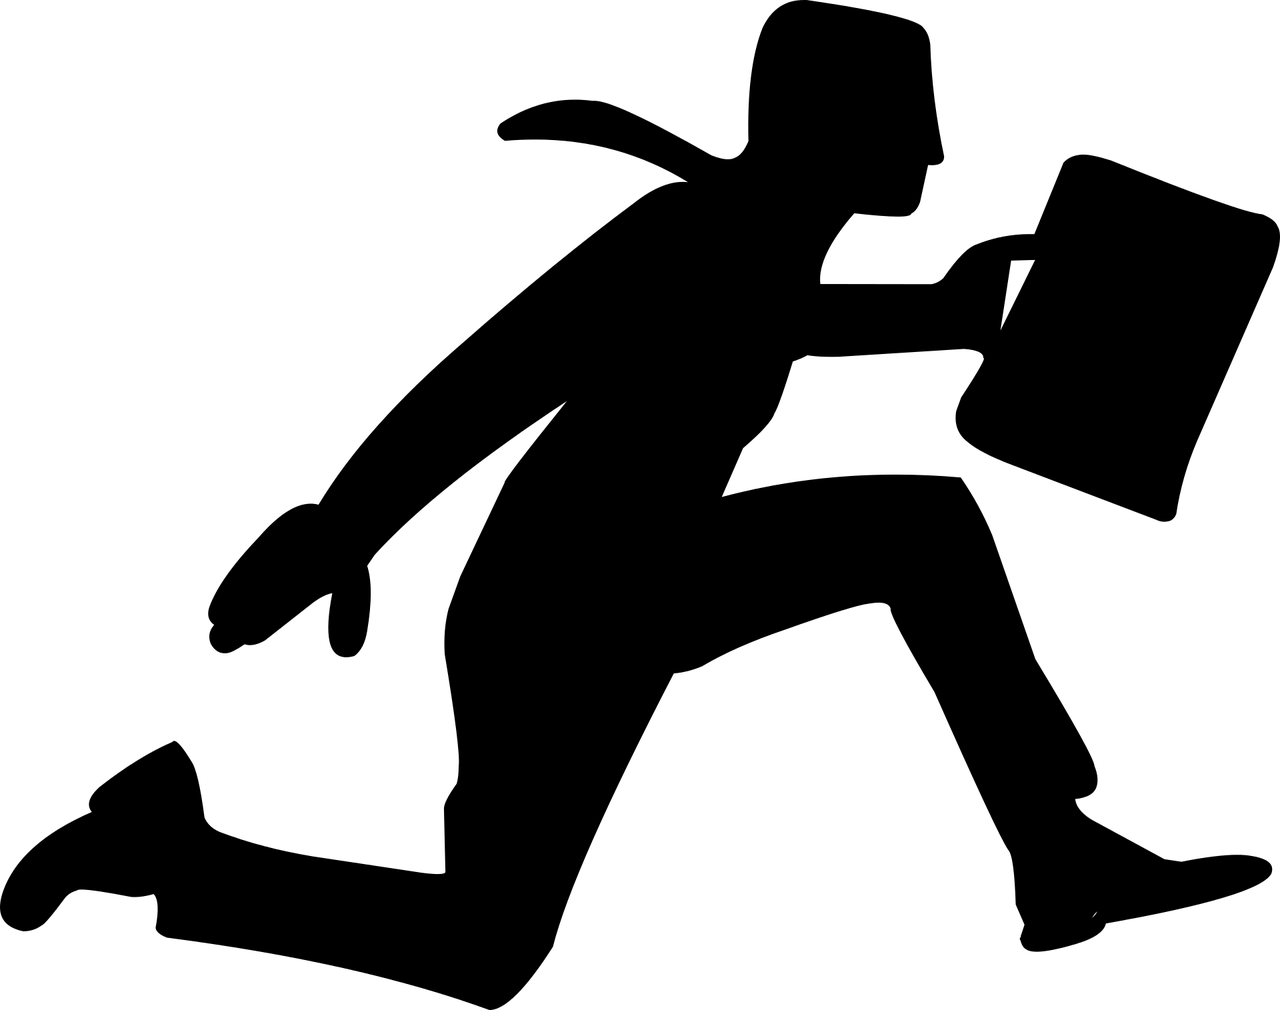 bookkeeper theft, bookkeeper stealing, bookkeeper is stealing